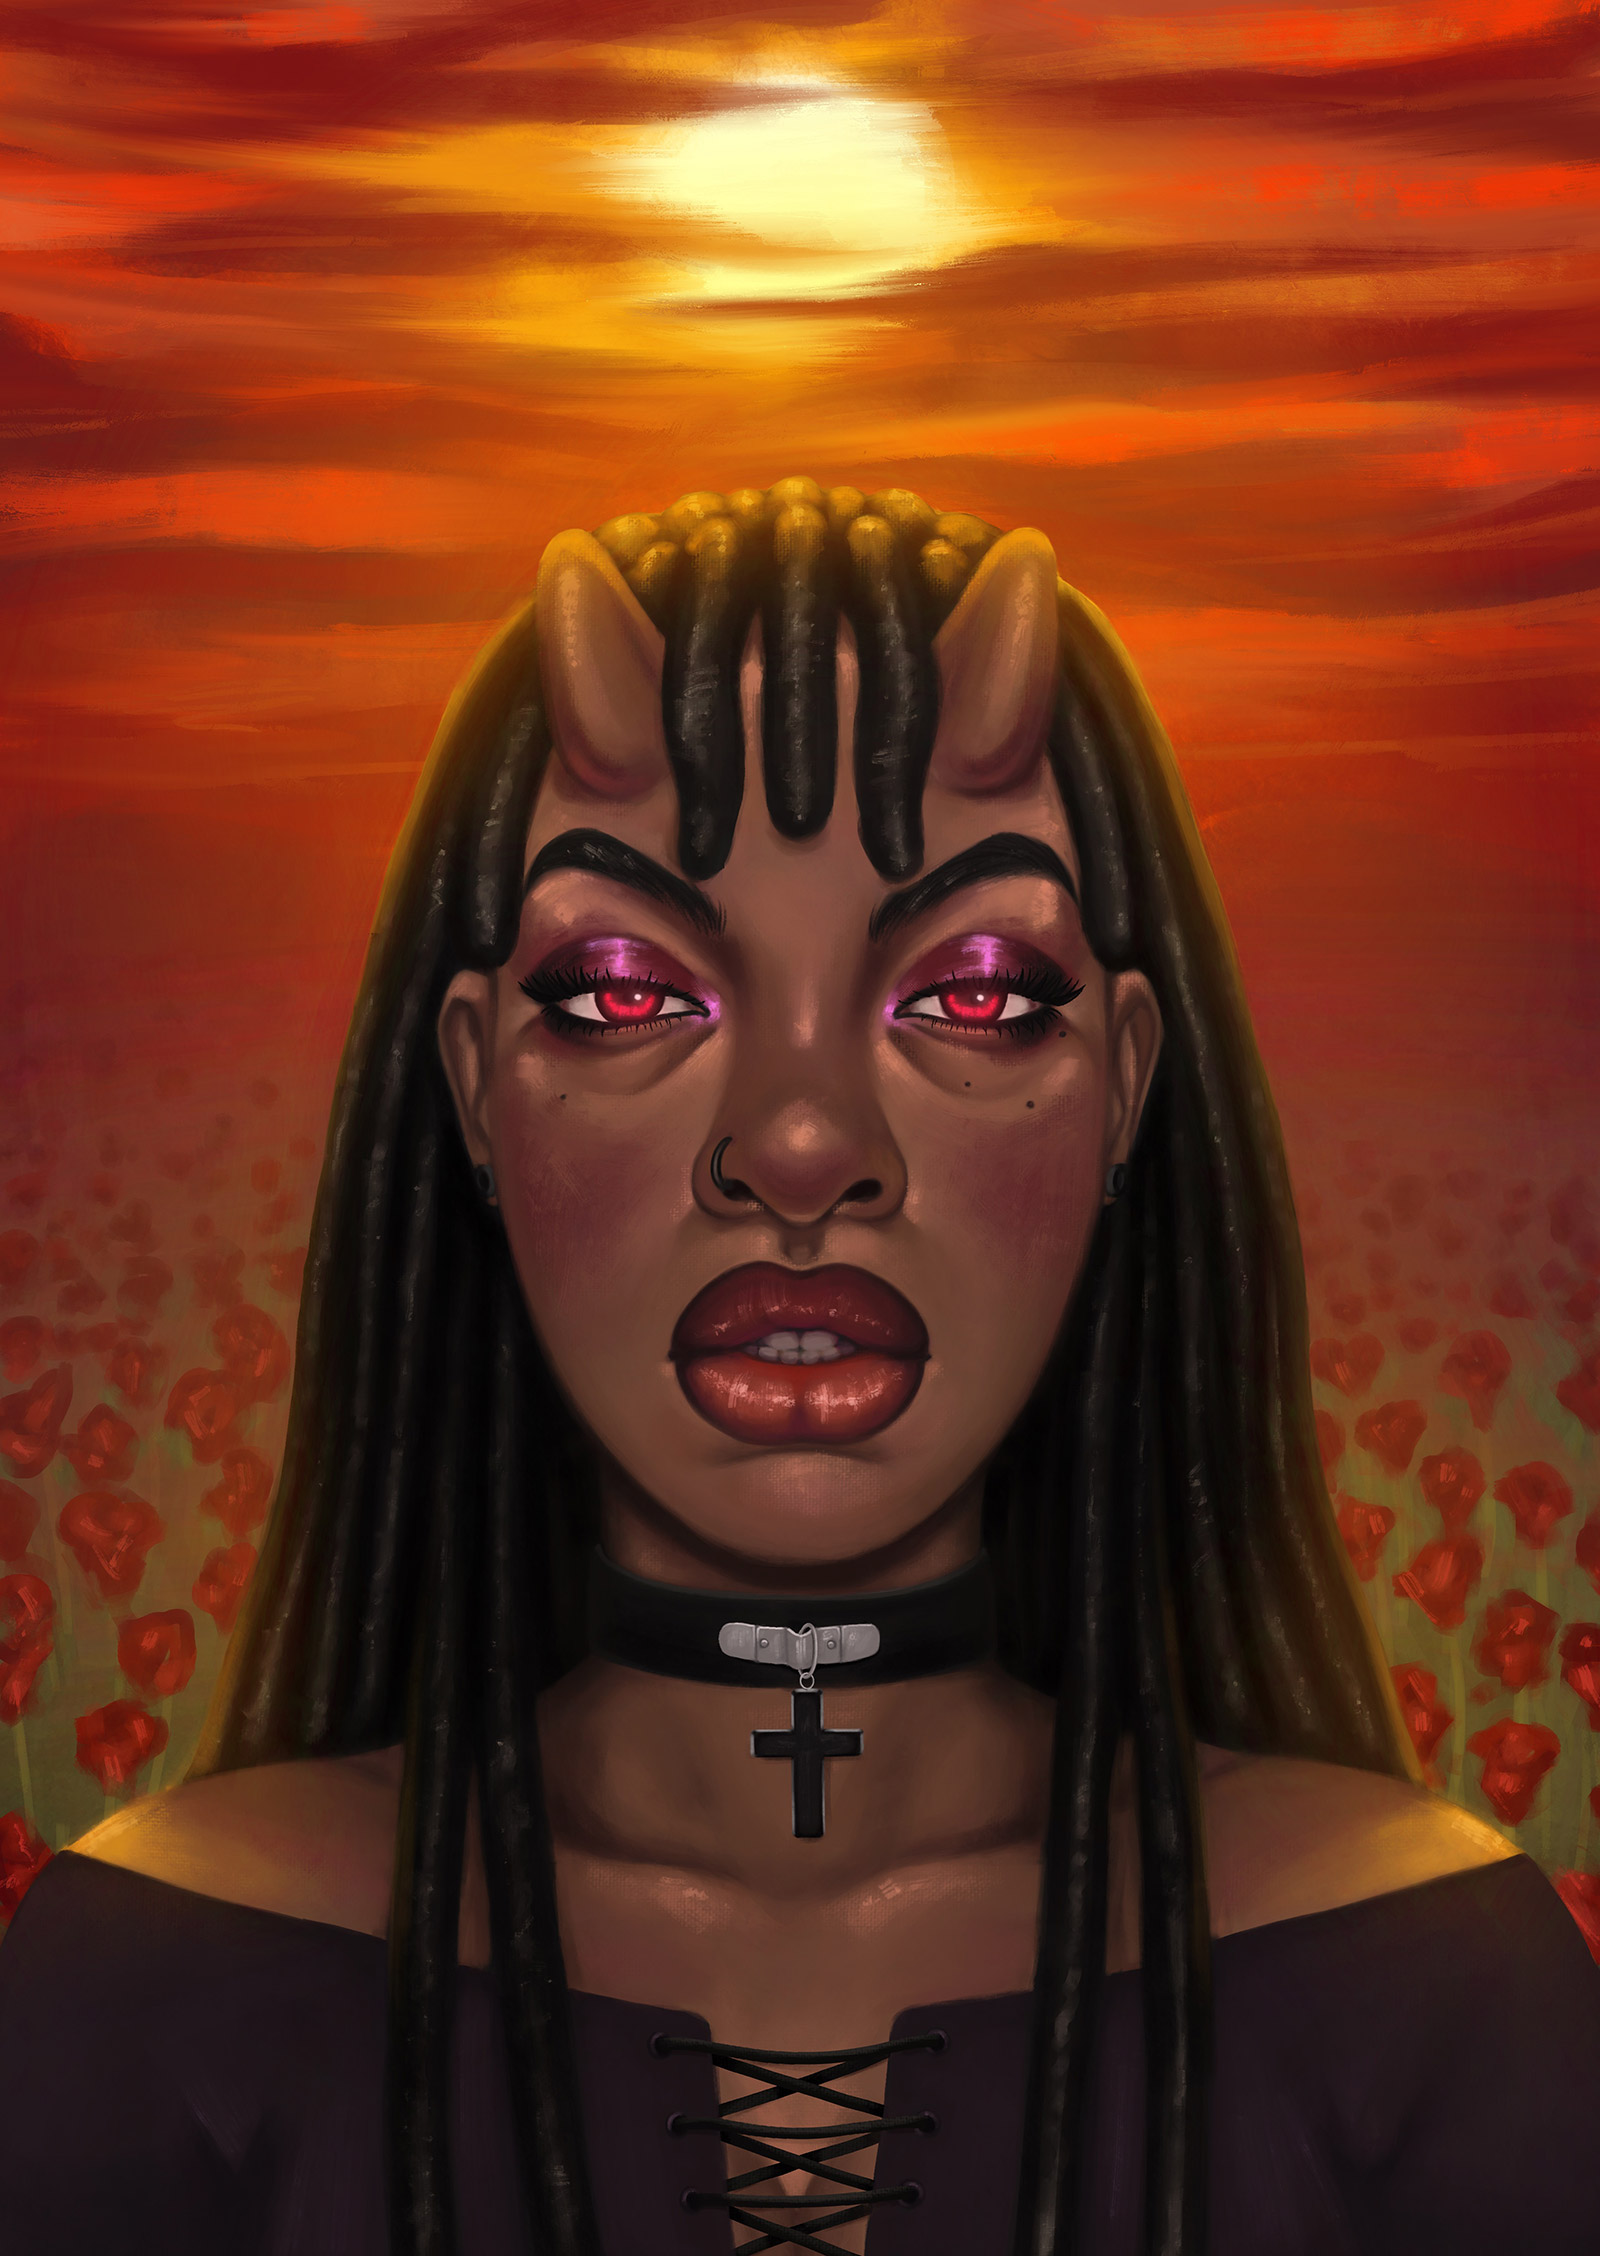 an illustrated self-portrait of Bolu Sowoolu, a Nigerian artist with red eyes, long locks, and a horned forehead, wearing an off-shoulder black top, choker with a cross pendant, magenta eyeshadow, with a field of red flowers and sunset behind her